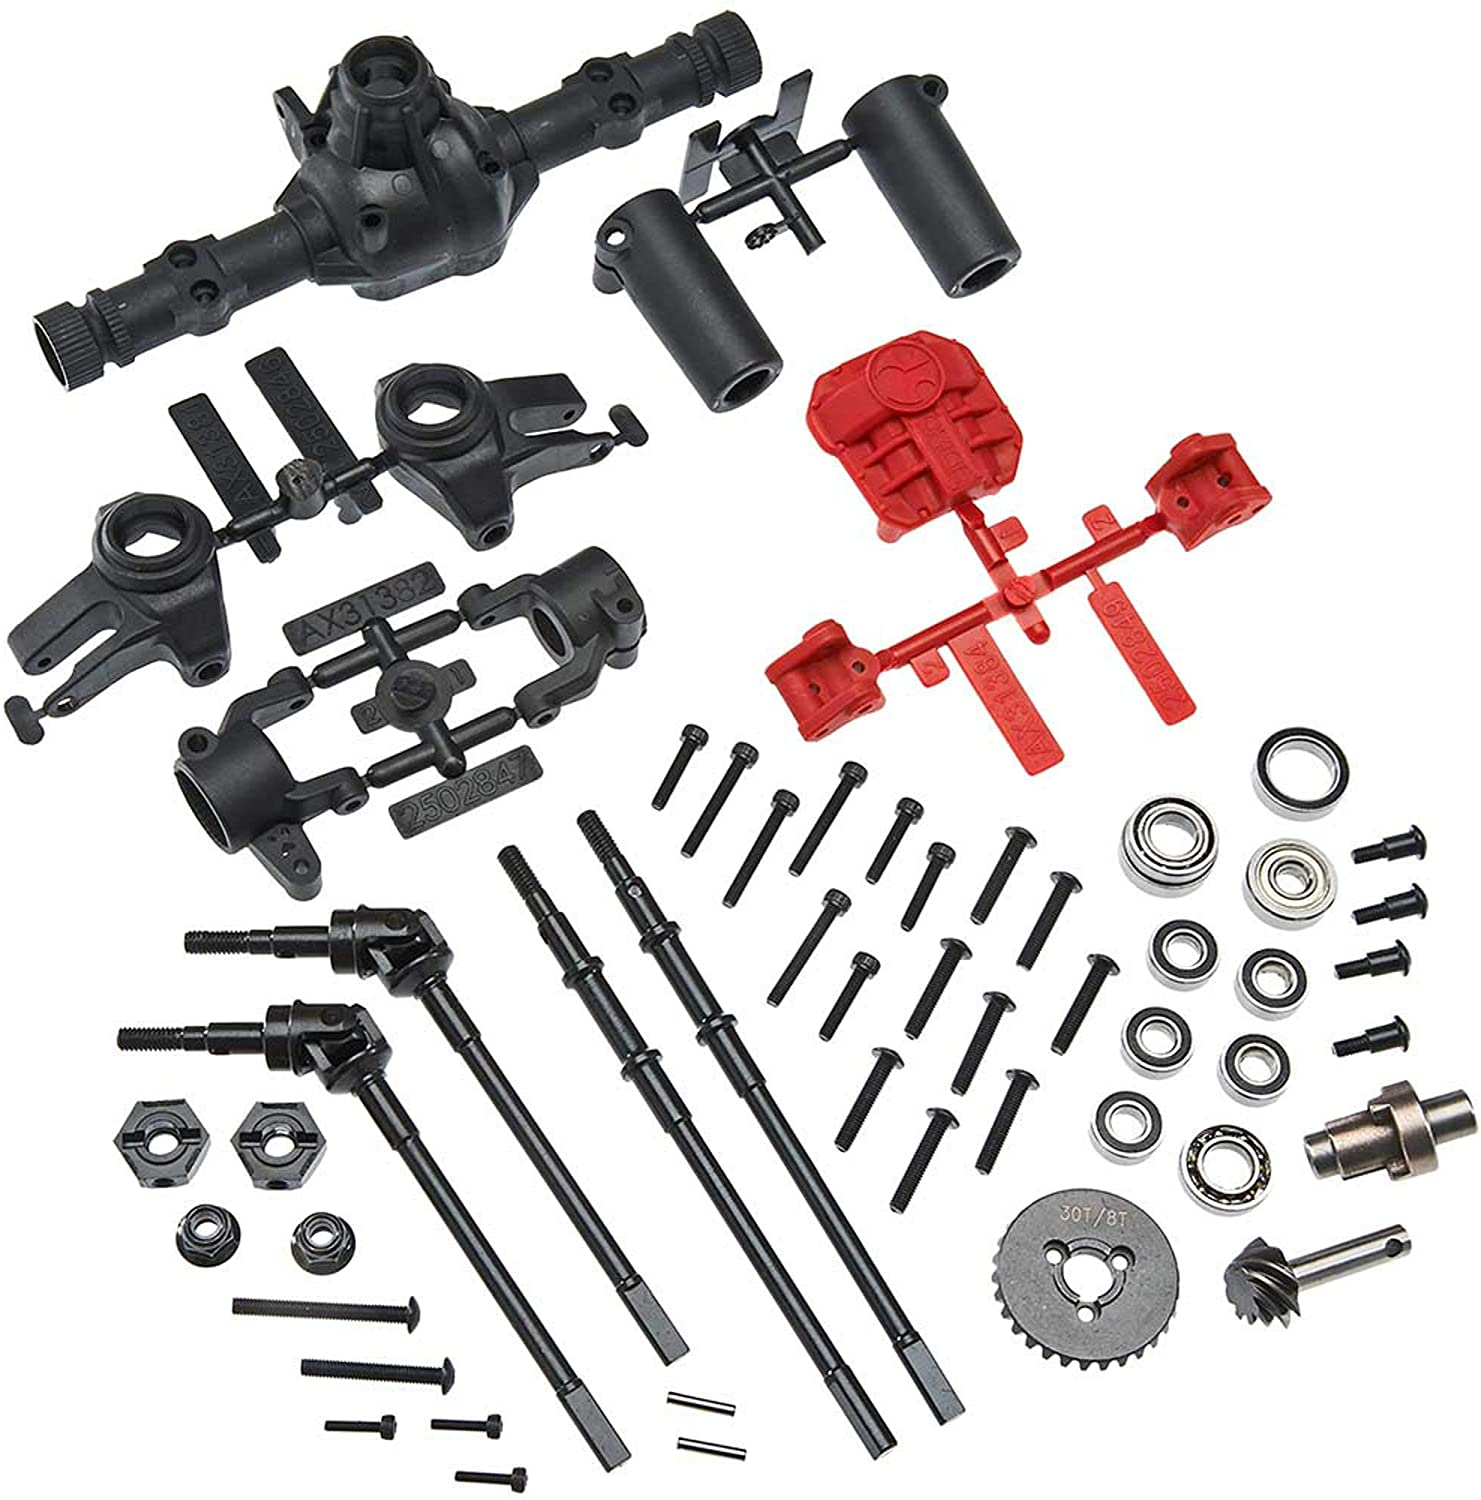 Front Complete Axle Complete Axle Good Stability for RC Car Lovers Professionals 1//10 Axial SCX10 I and SCX10 II RC Car Repair and Replace